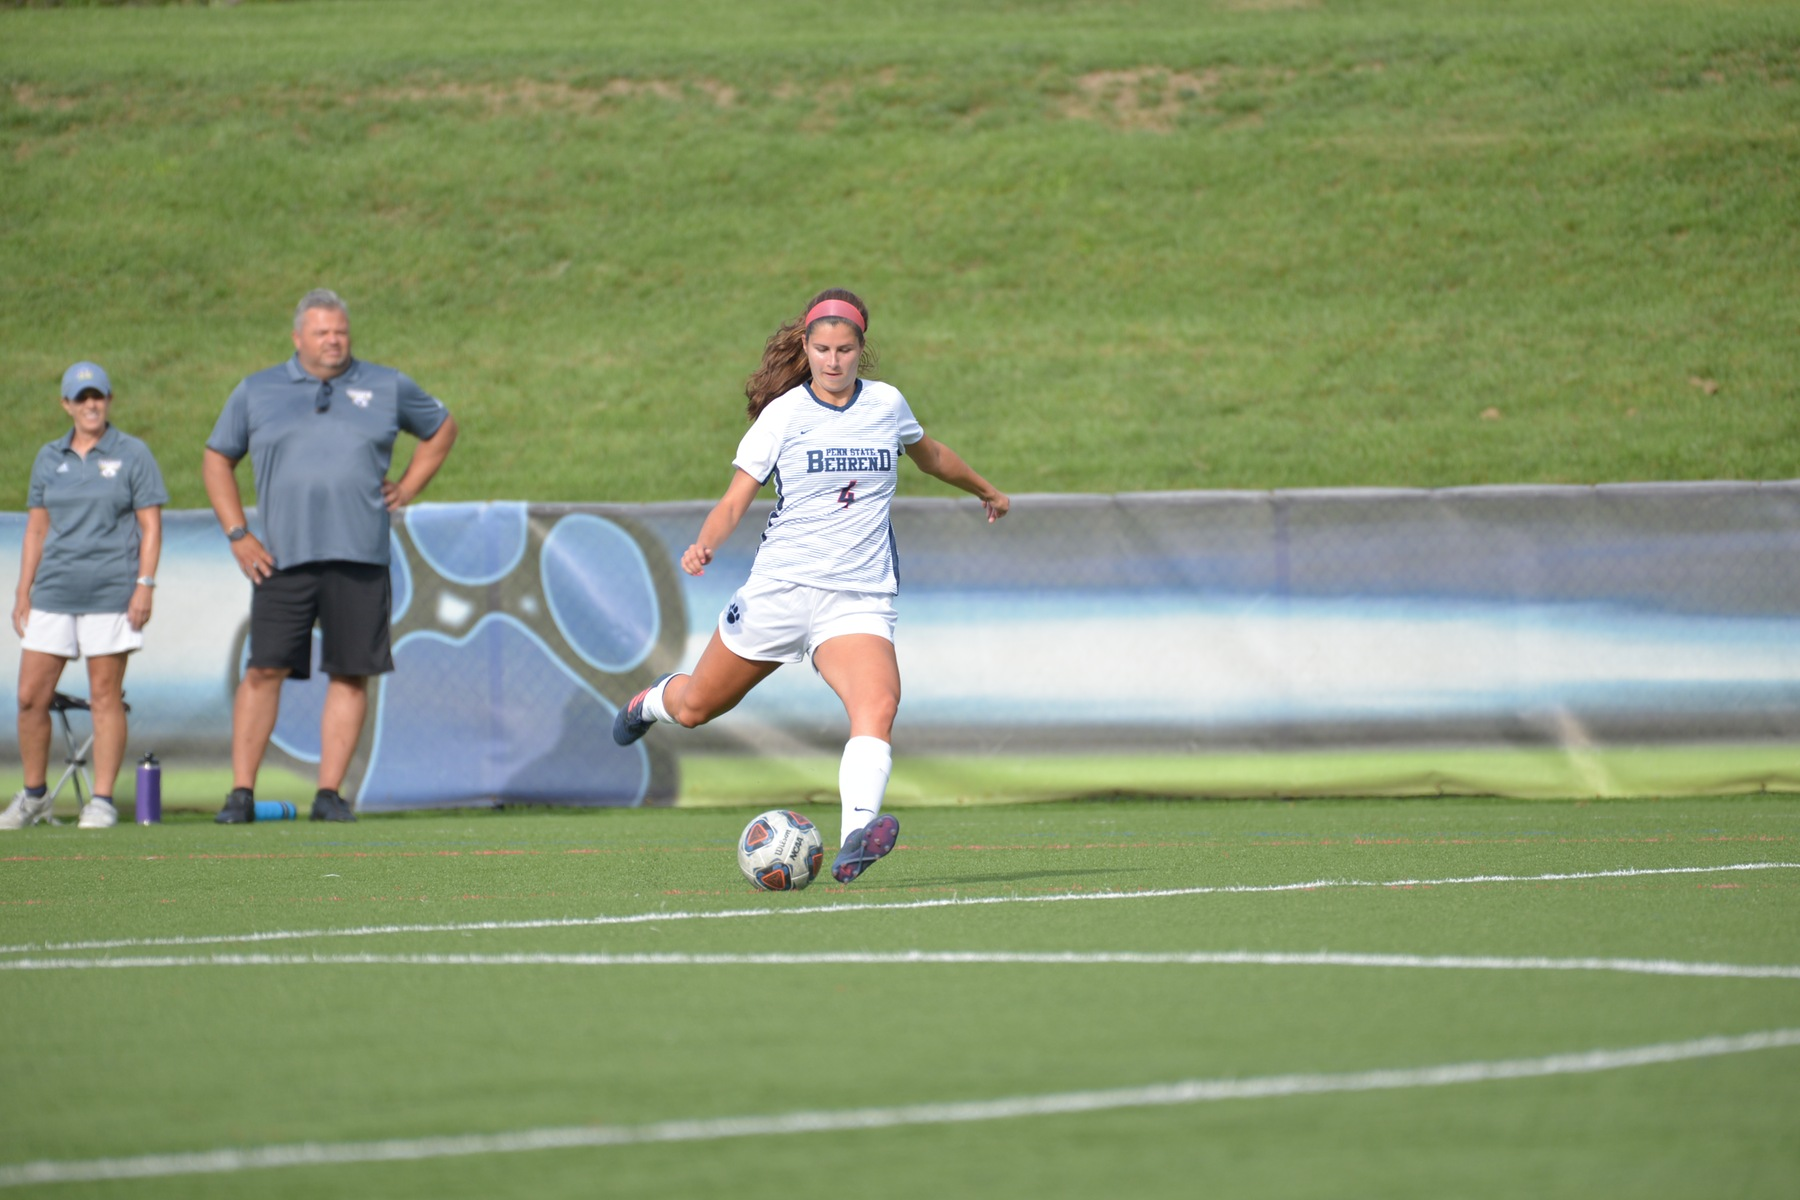 Lions Top Washington & Jefferson in Women's Soccer